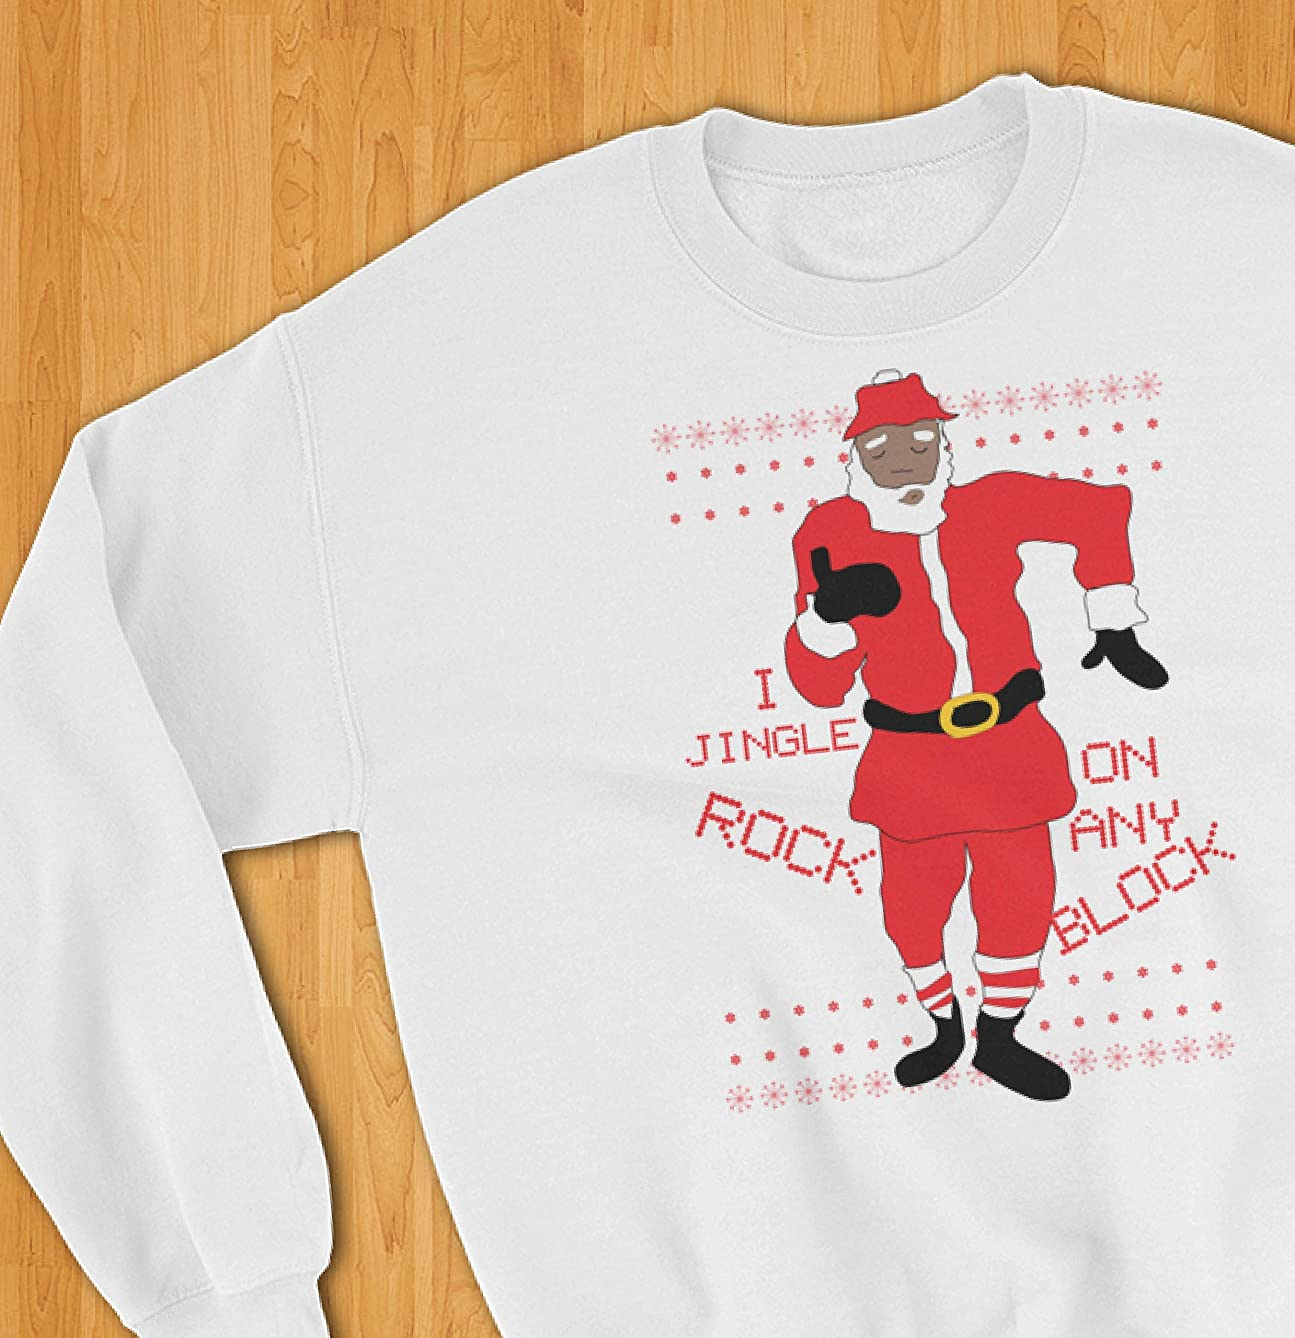 Hilarious Ugly Christmas Sweater Milly Rockin' Santa Claus for Her Him, Unisex Hip Hop Christmas Sweatshirt